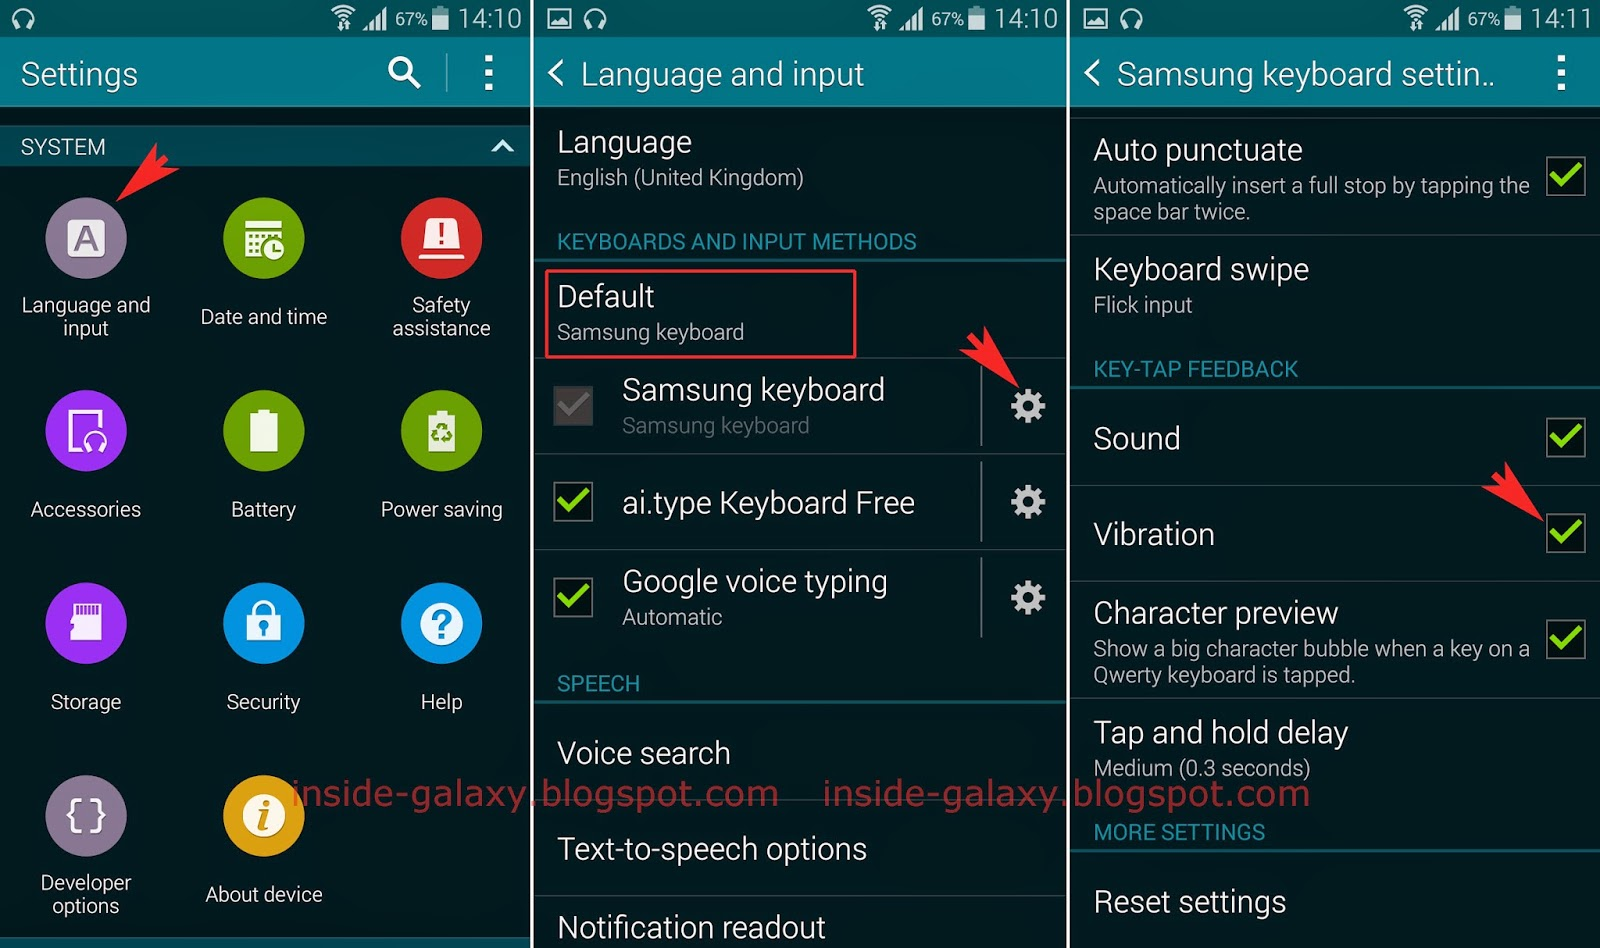 Samsung Galaxy S5: How to Enable or Disable Key Tap